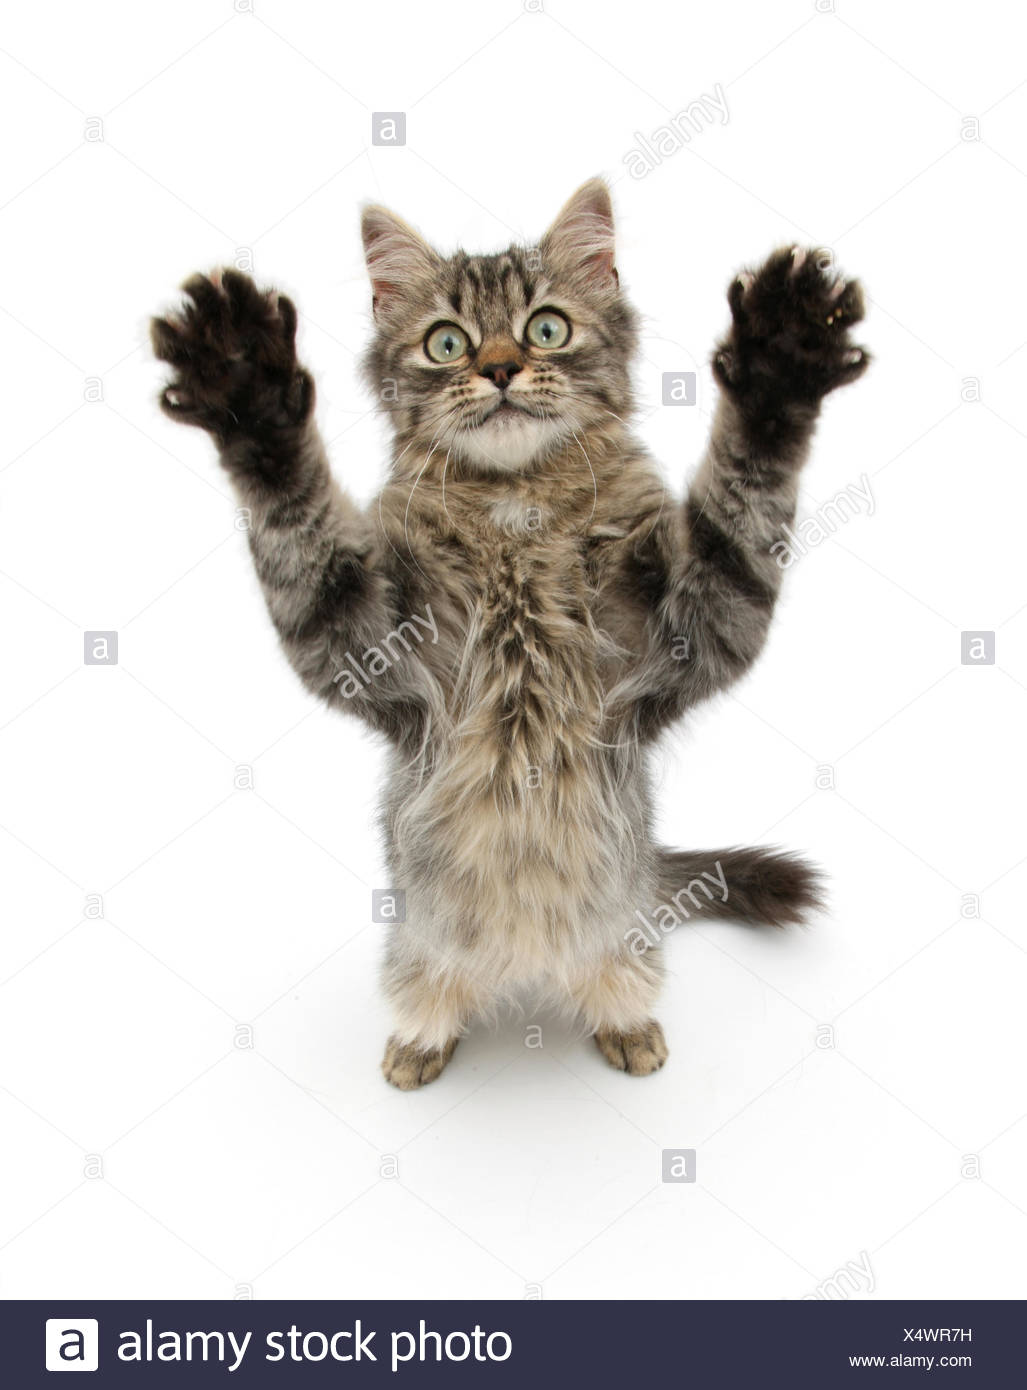 Tabby kitten, 5 months, standing up with raised paws. - Stock Image